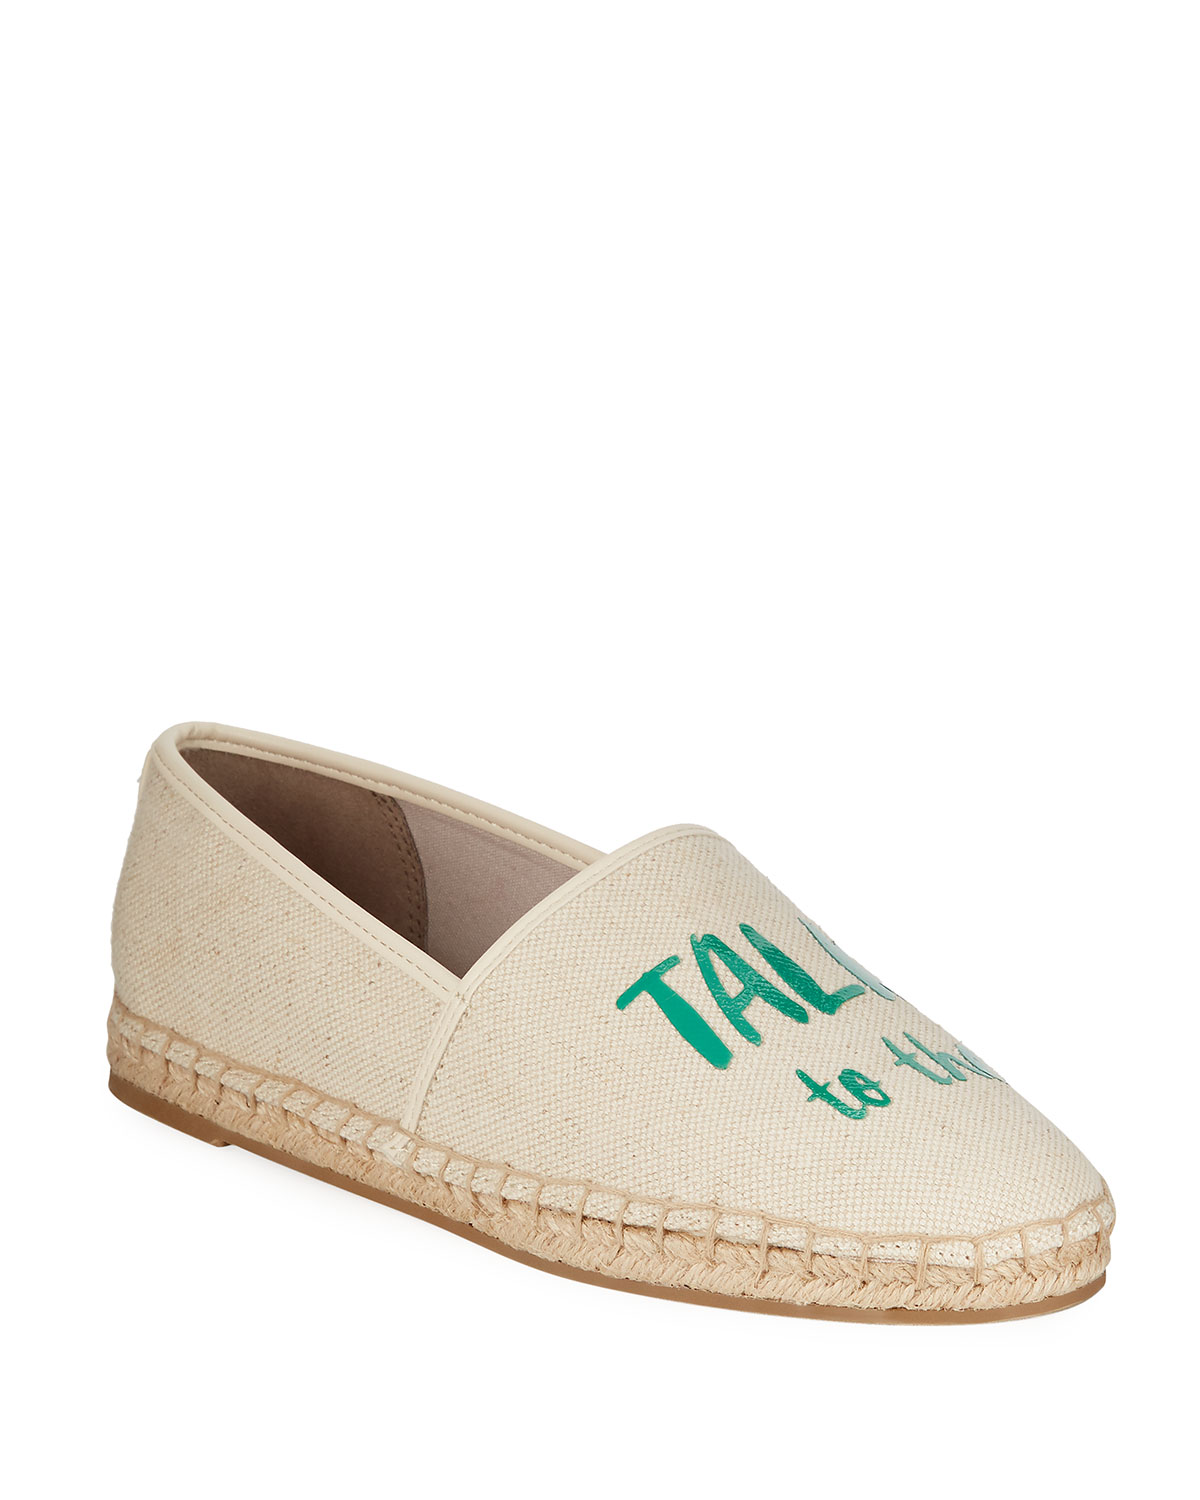 a41285a95 Circus By Sam Edelman Leni Slip-On Palm Tree Canvas Espadrilles In ...